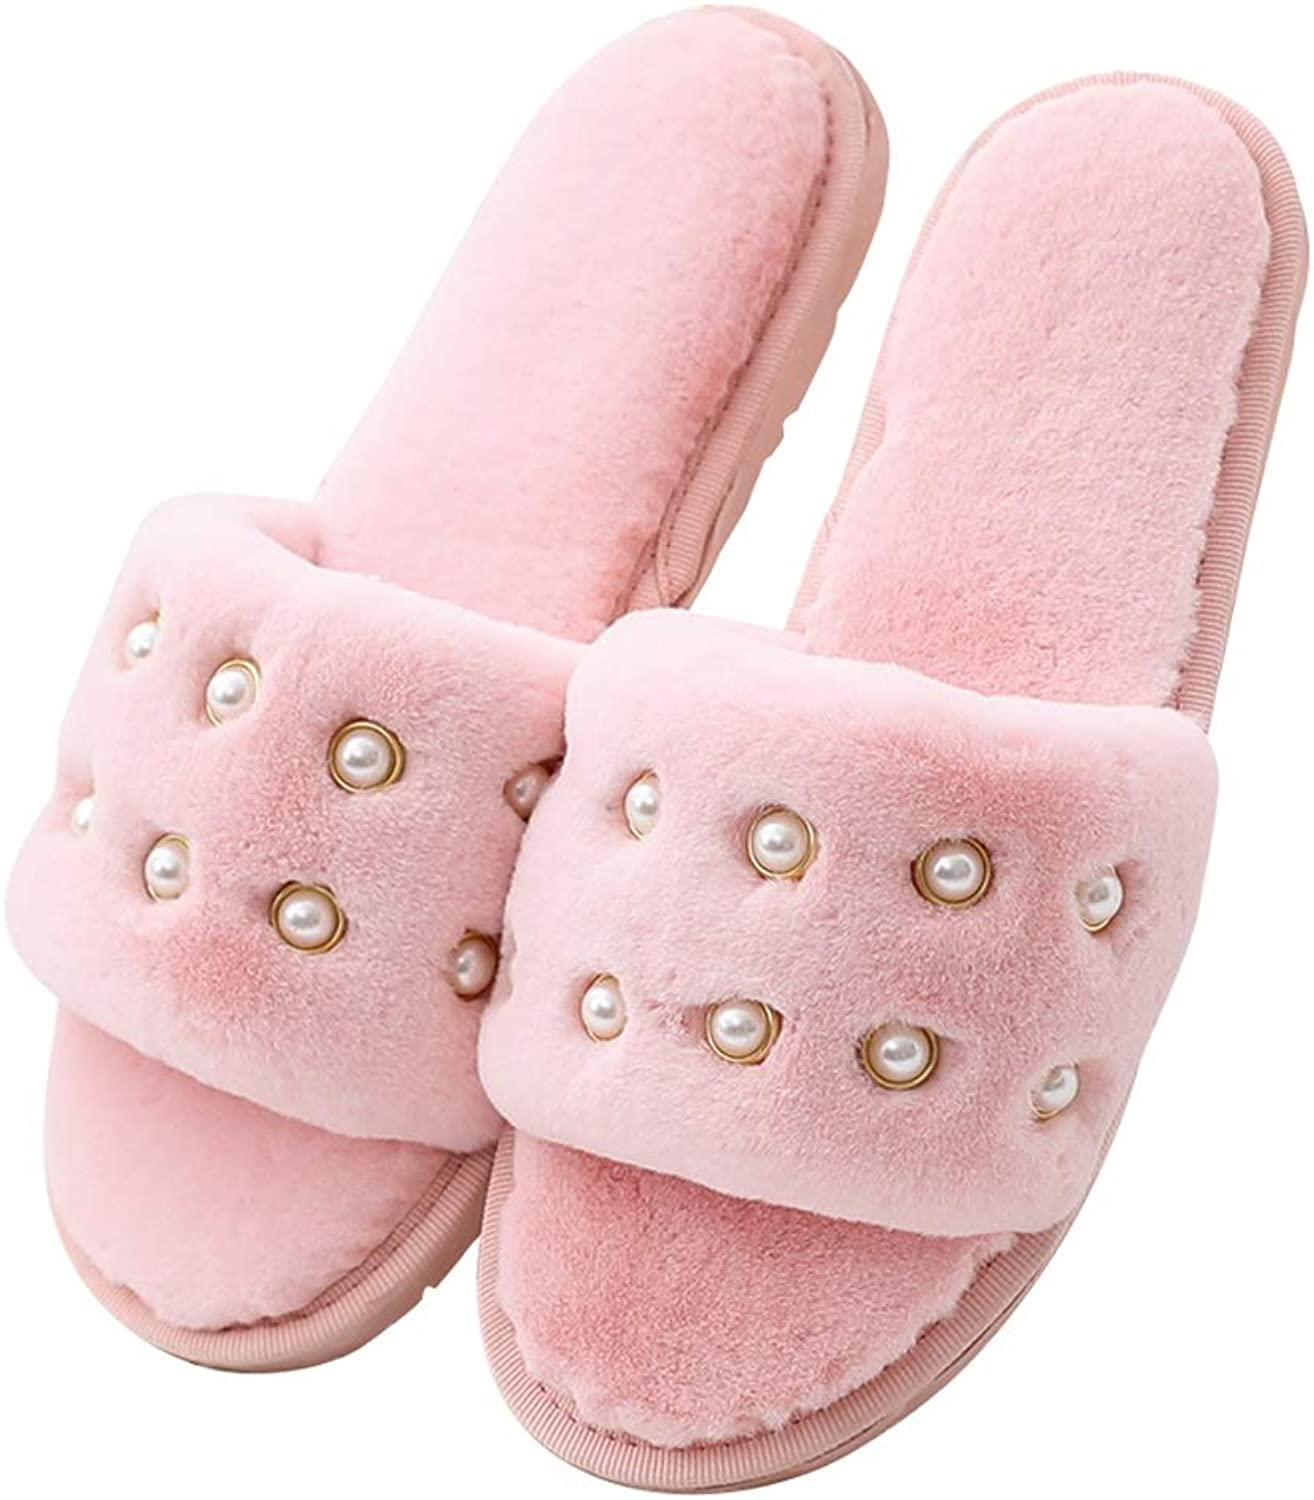 HUYP Cotton Slippers Female Winter Indoor Home Thick-Slip Wooden Floor (color   Pink, Size   5.5 US)